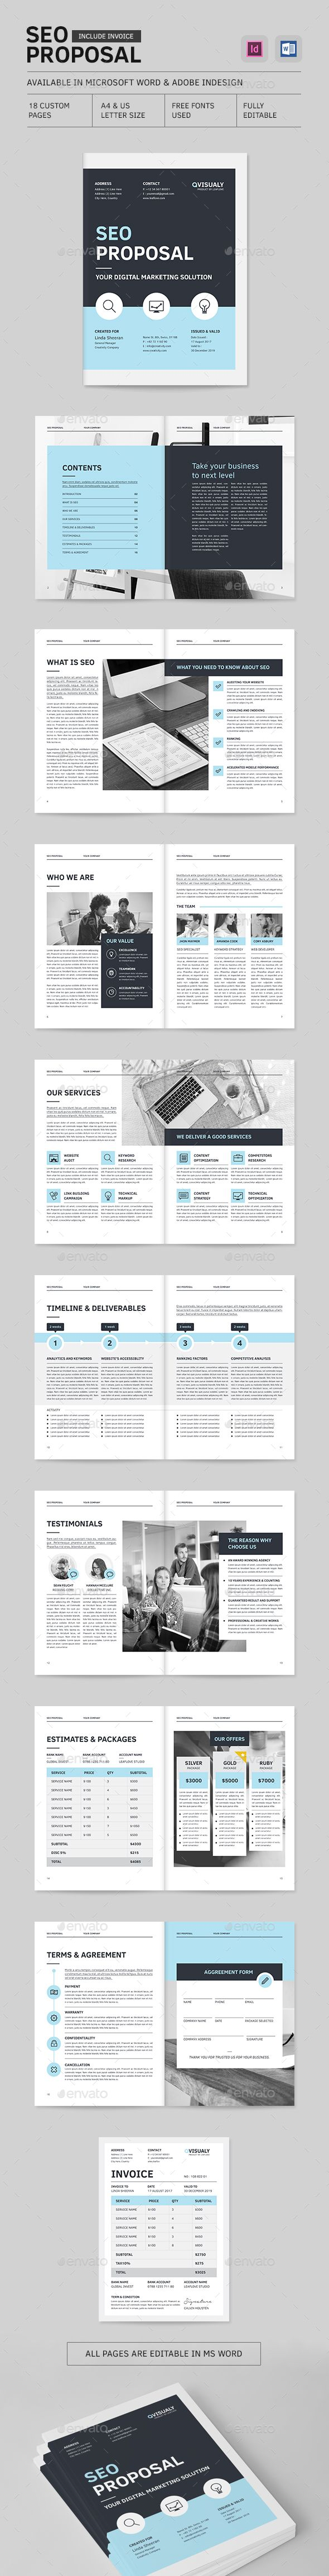 Seo Proposal Brochure Template Indesign Indd  DesignWork Ideas